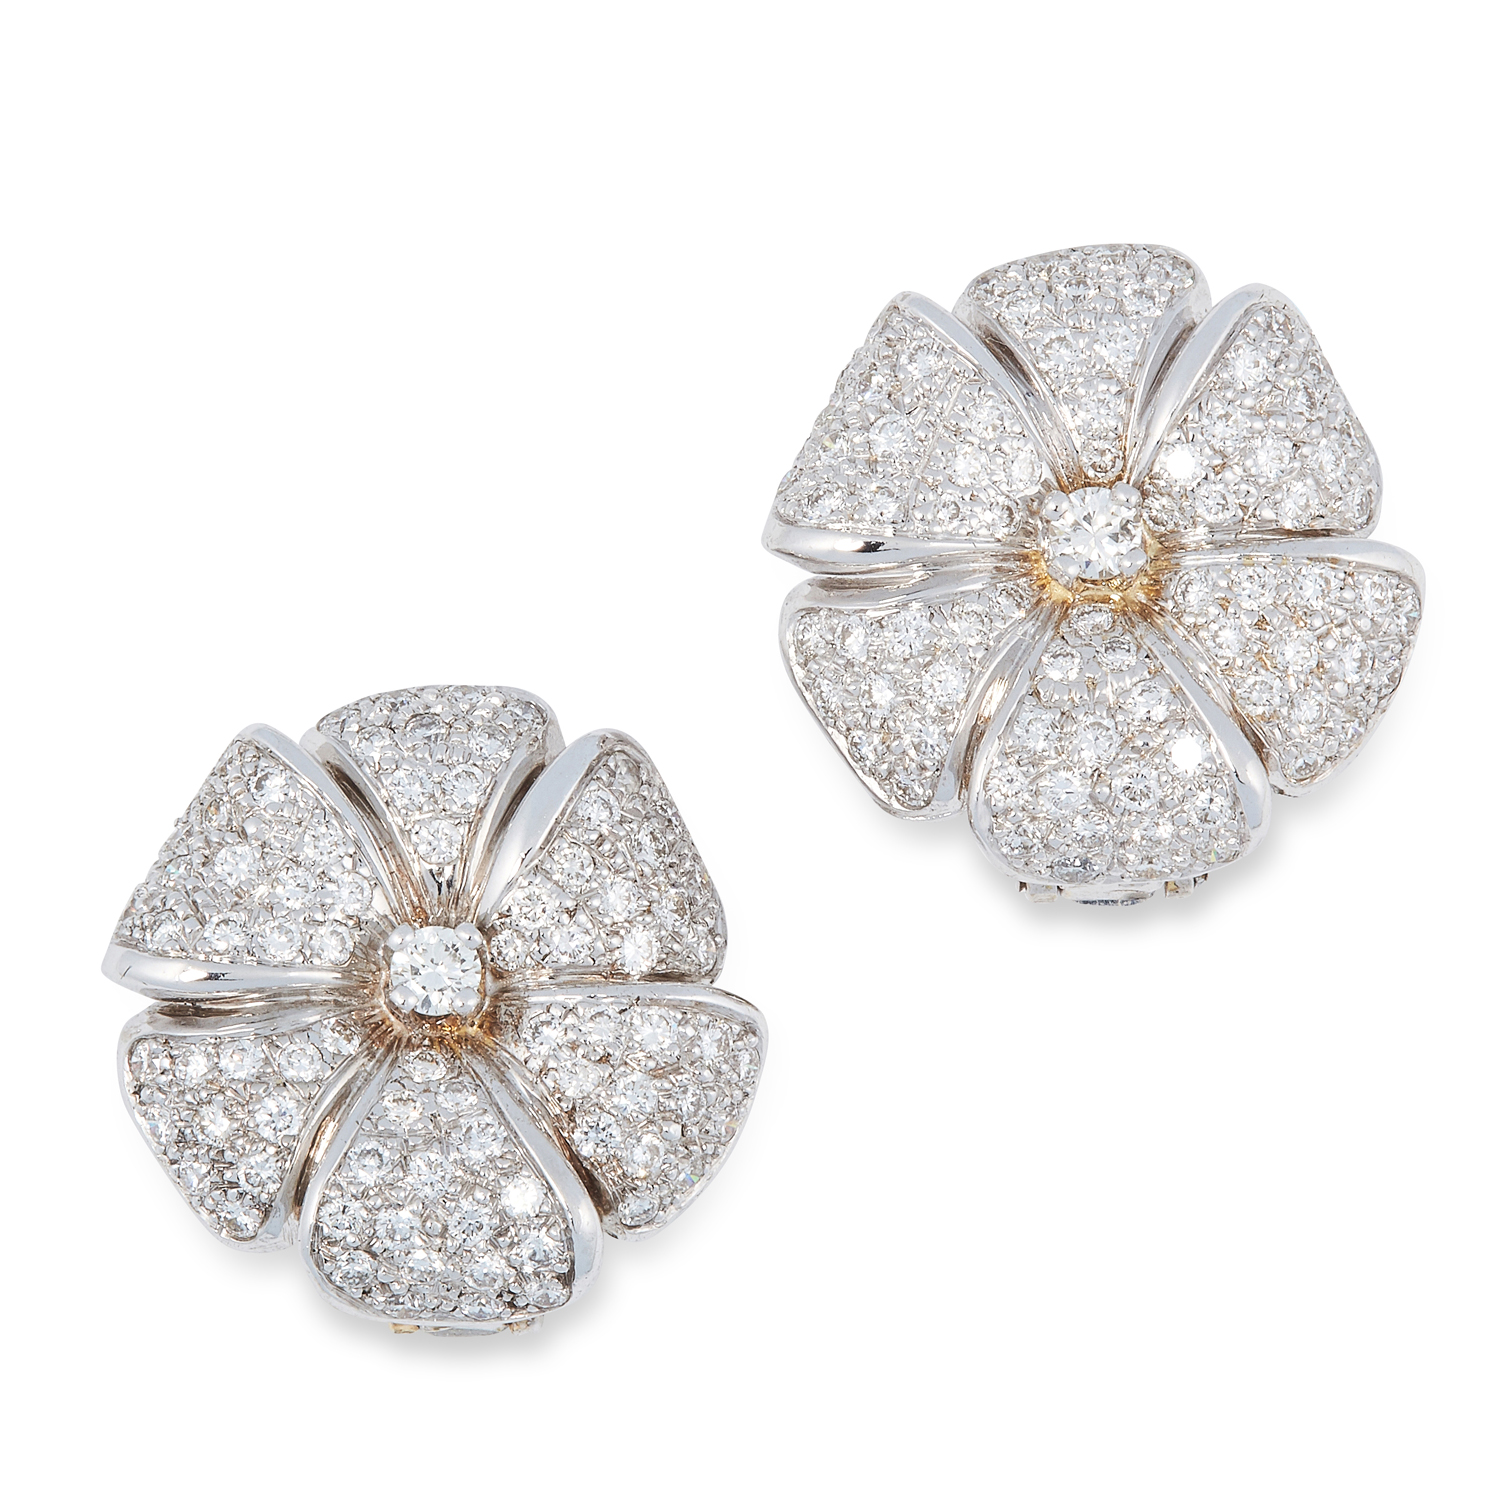 A PAIR OF DIAMOND FLOWER EARRINGS, BEN ROSENFELD in 18ct gold, the petals pave set with round modern